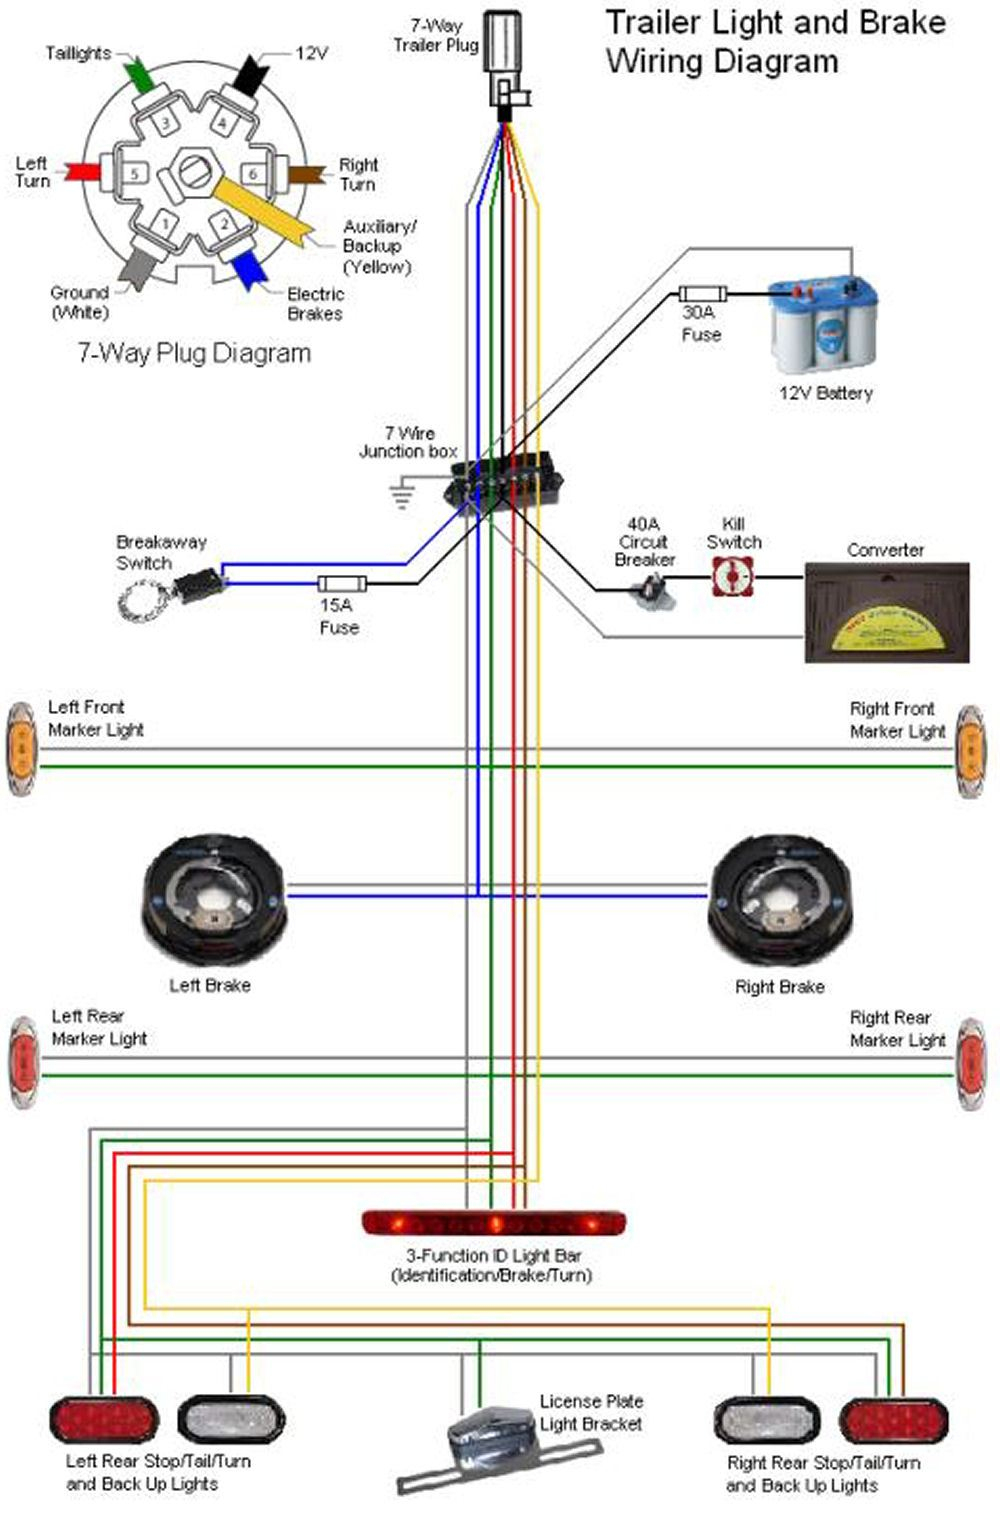 Phillips 7 Pin Wiring Diagram | Wiring Diagram - Phillips 7 Way Trailer Plug Wiring Diagram